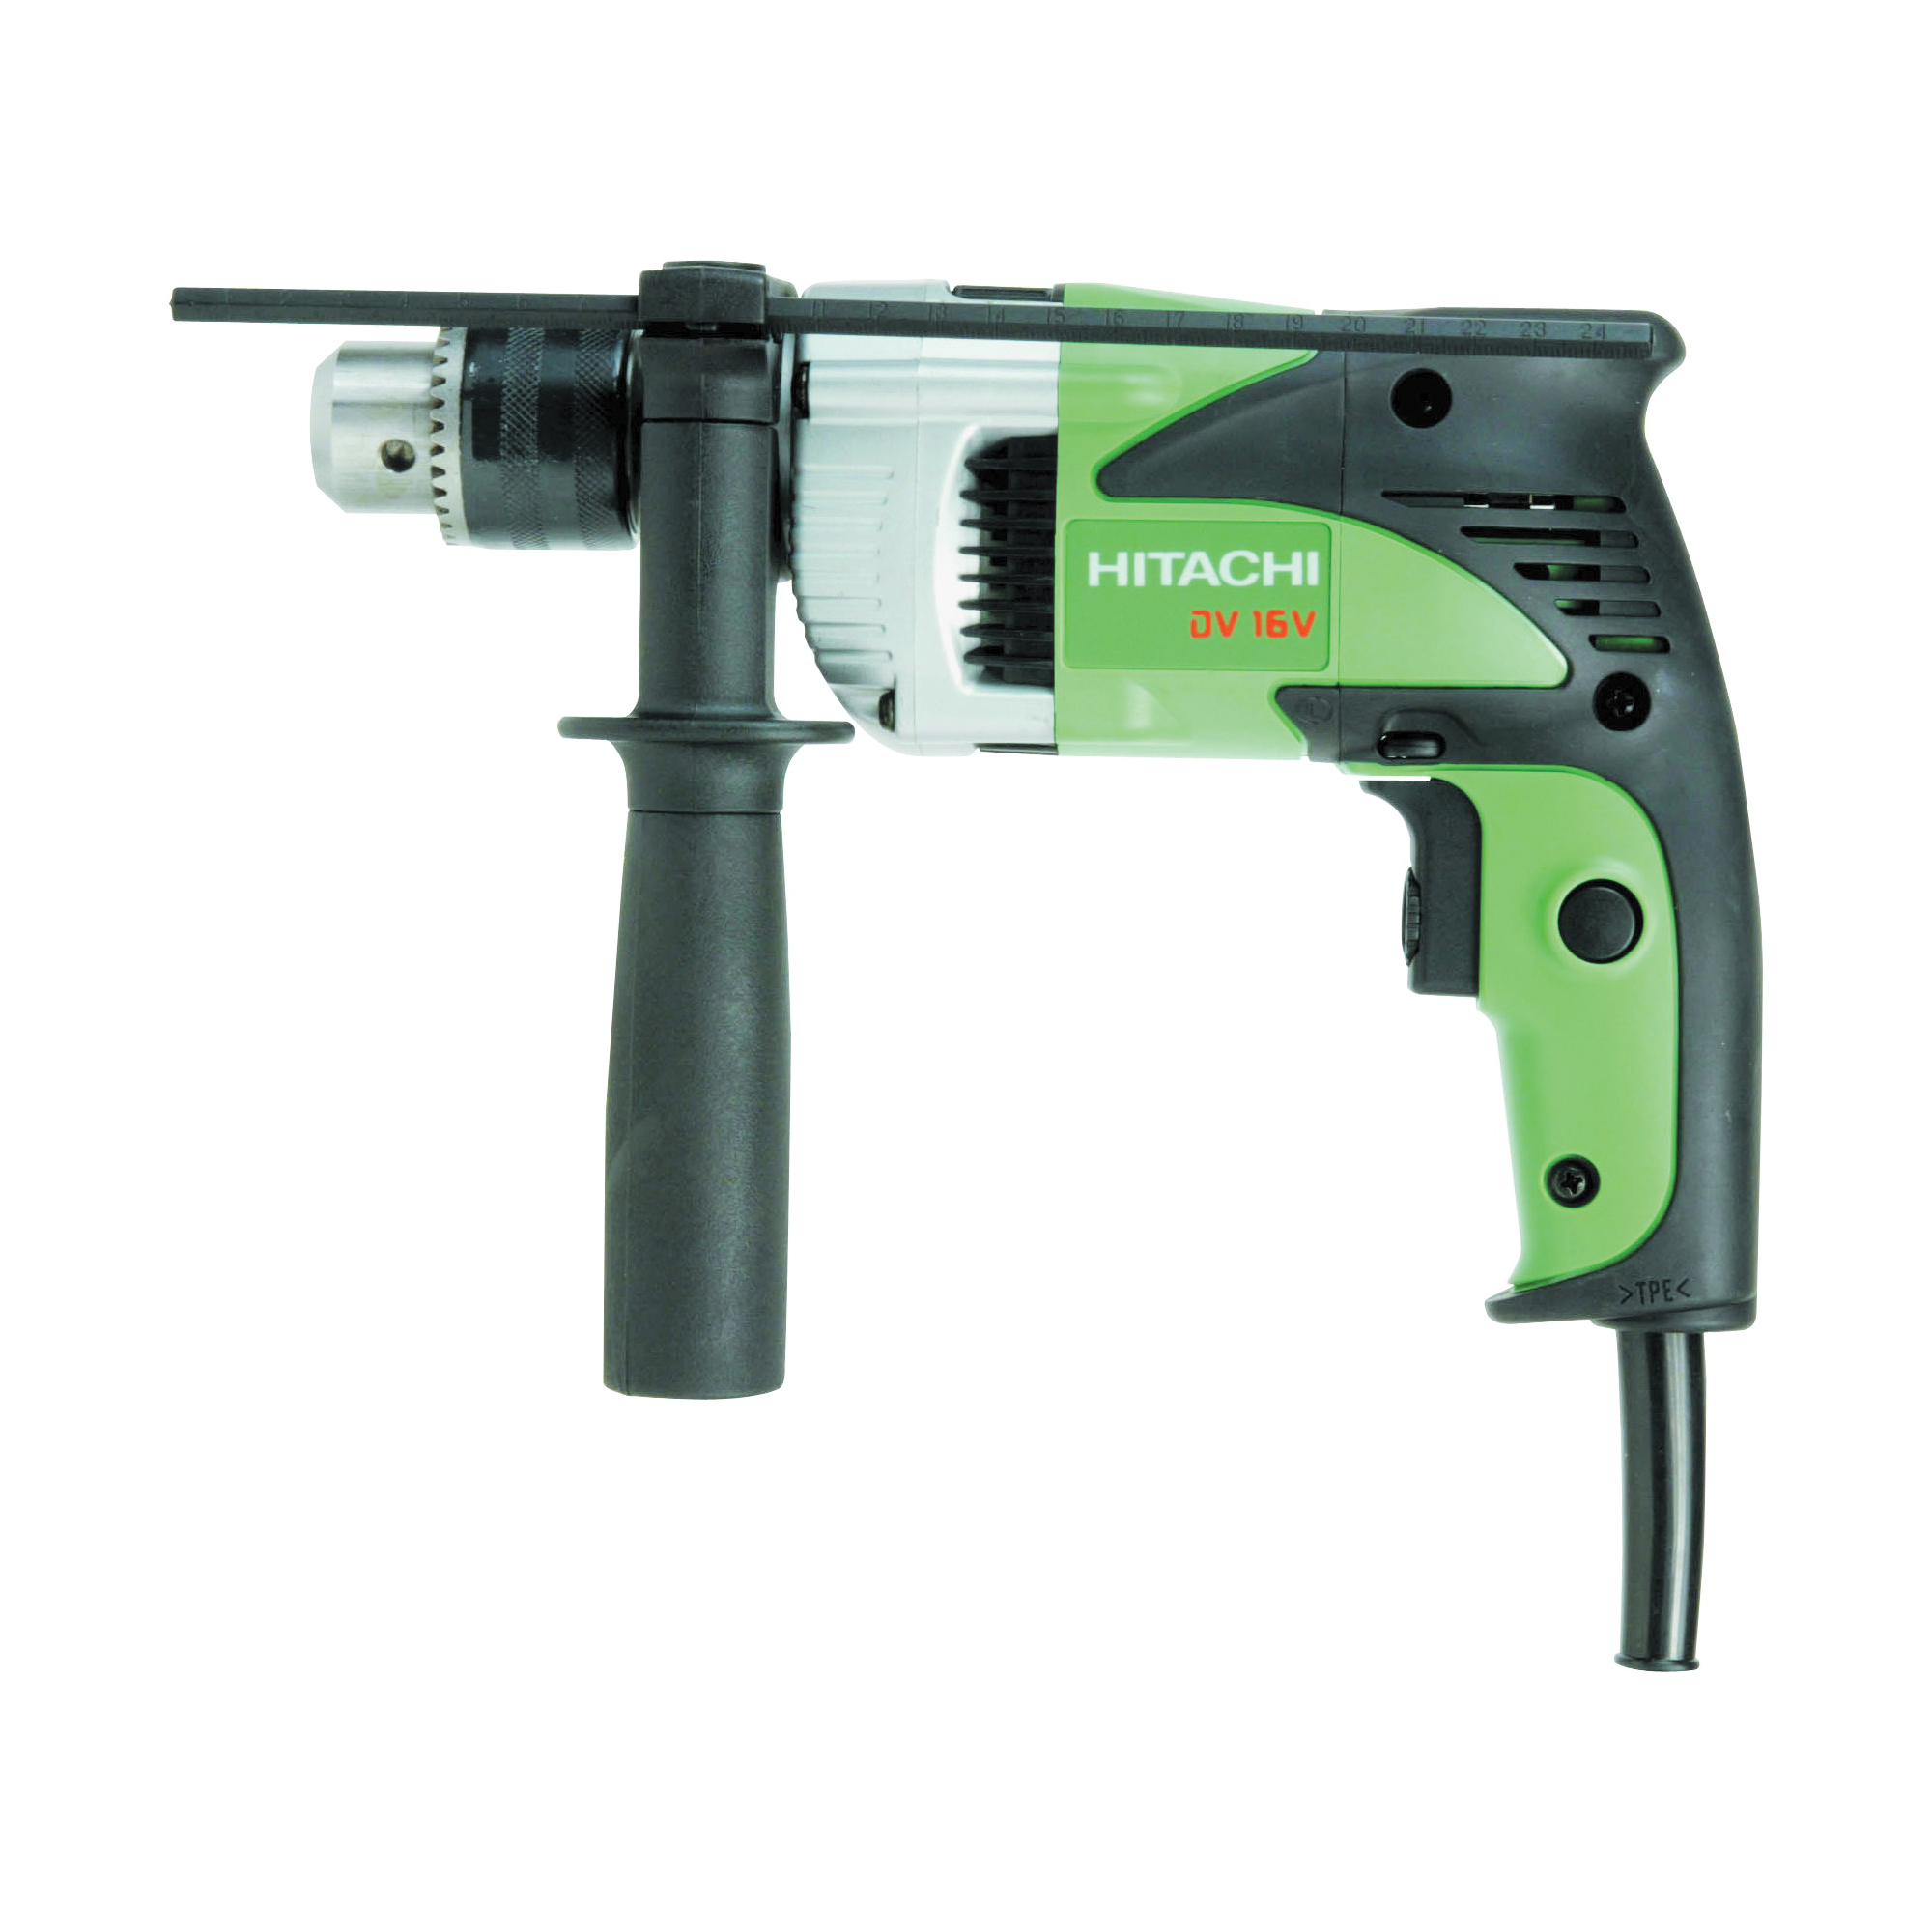 Picture of HITACHI DV16V Hammer Drill, 6 A, 350 W, 5/8 in Concrete, 1 in Wood, 1/2 in Steel Drilling, 1-1/16 in Chuck